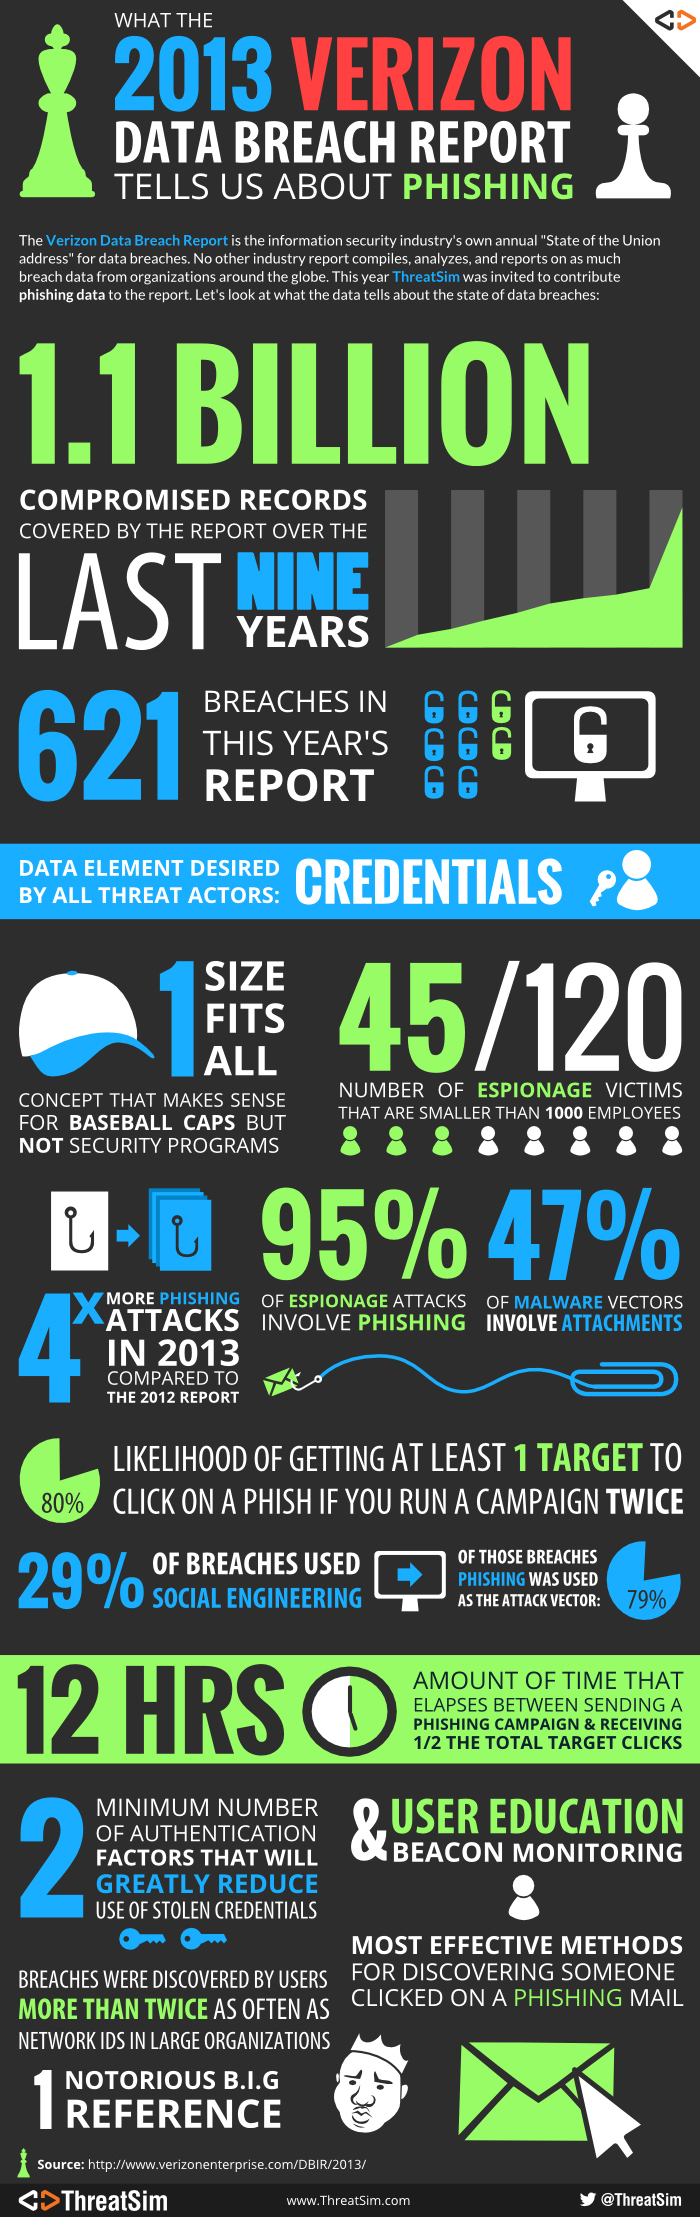 What the 2013 Verizon Data Breach Report Tells Us About Phishing